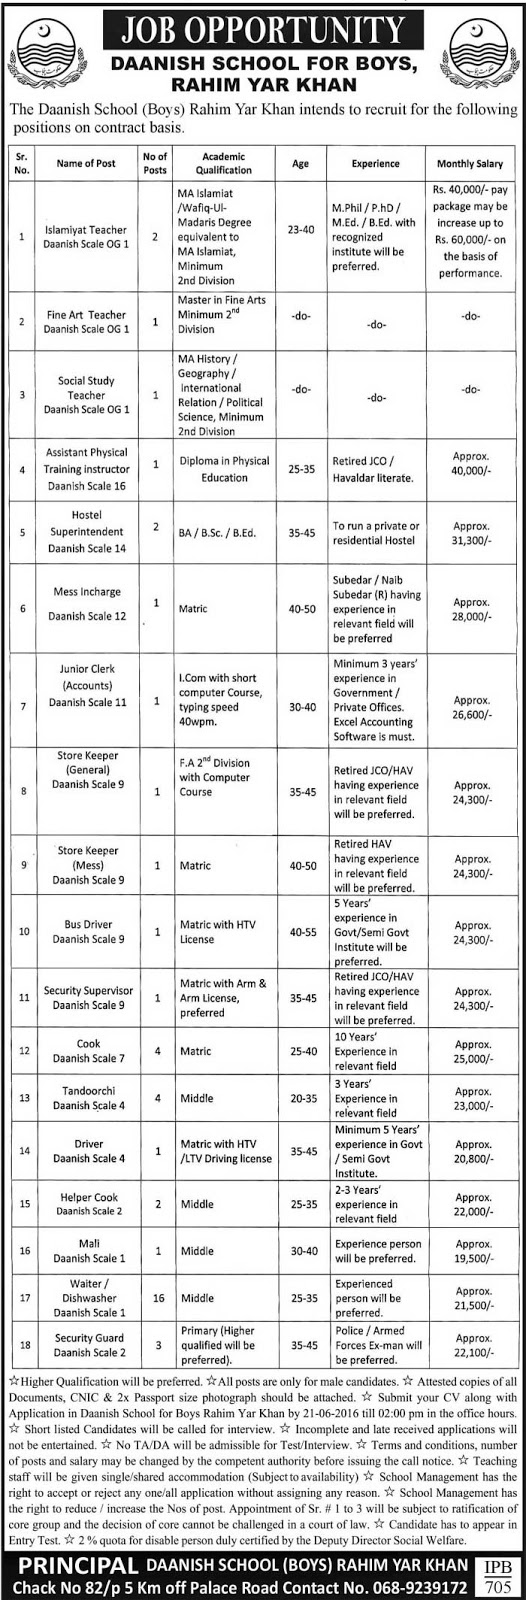 Daanish School Boys Rahim Yar Khan Teachers Jobs in Pakistan